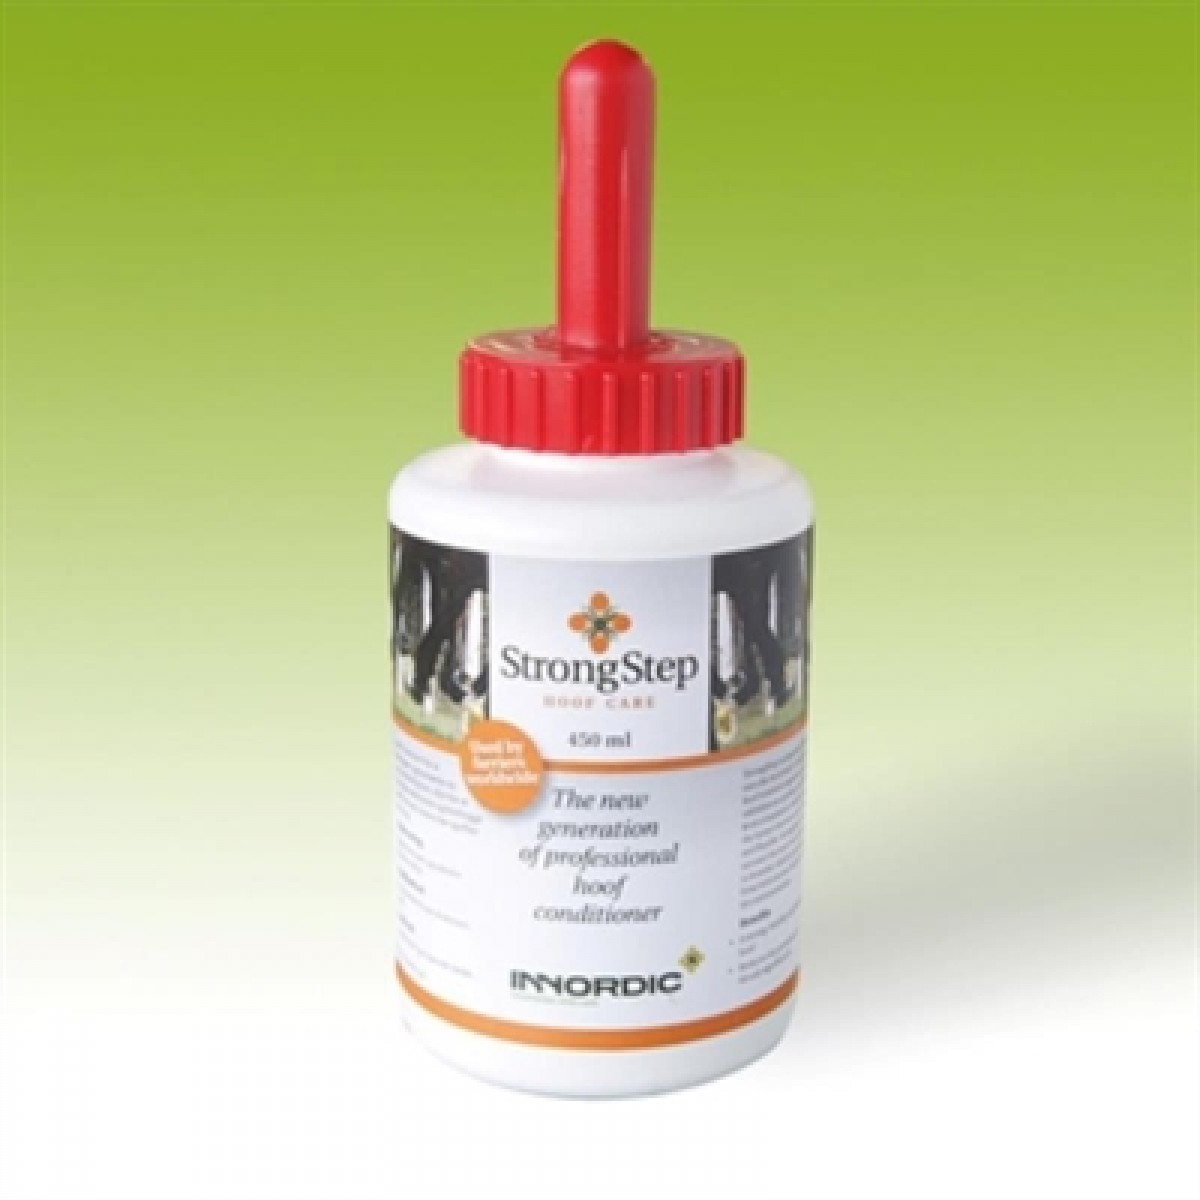 Strong Step Hoof Care 450ml